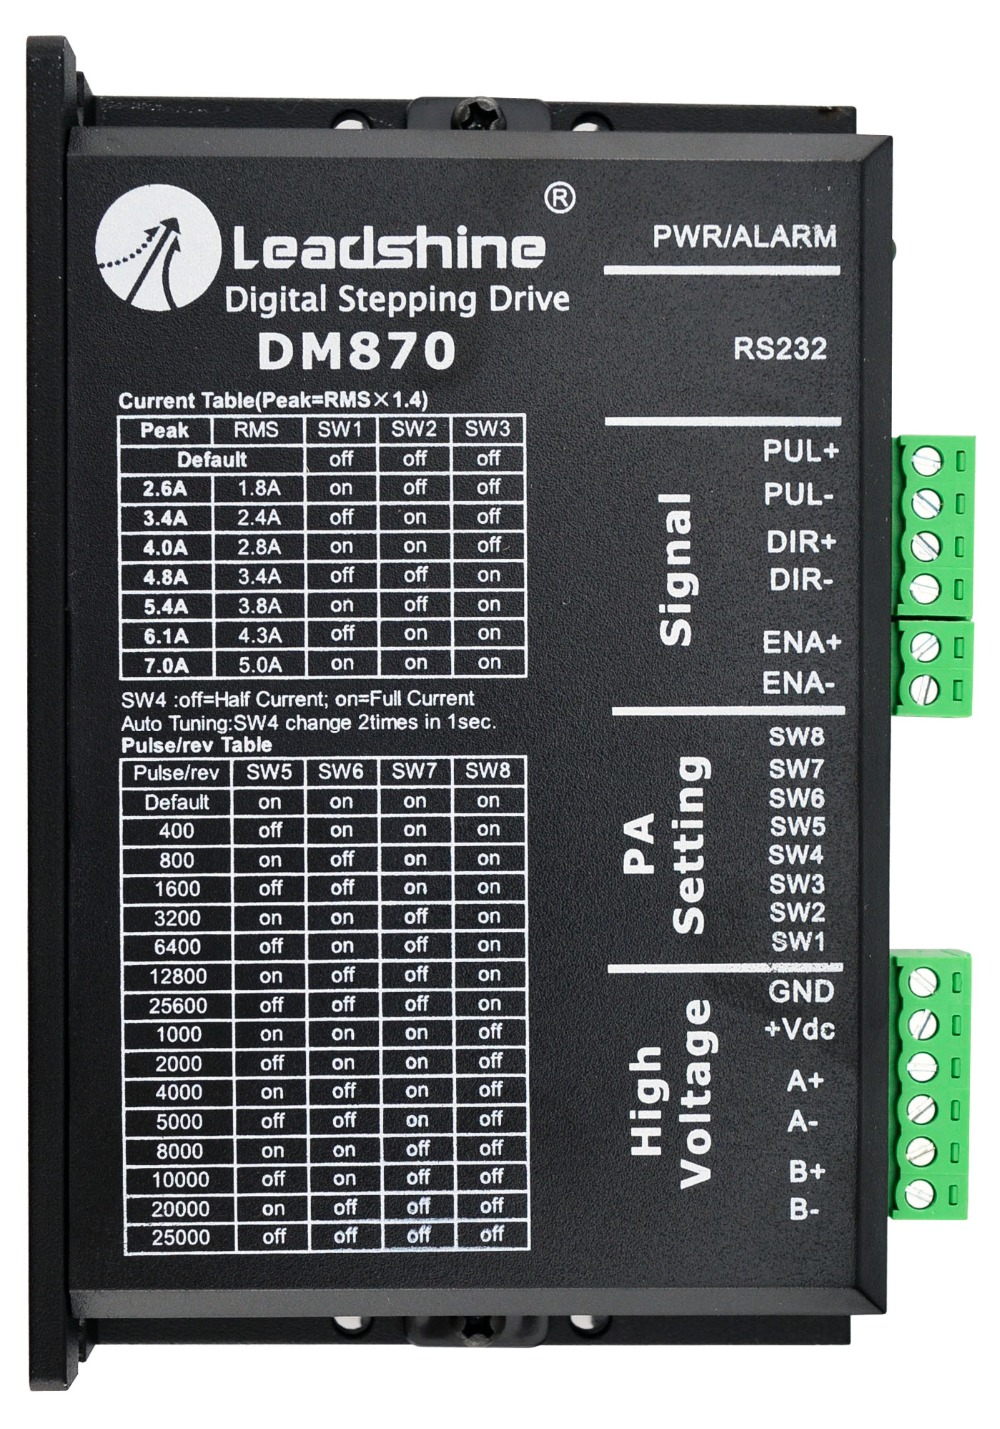 Leadshine DM870 Digital Stepper Motor Drive 24-72 VDC with 0.5-7A toothed belt drive motorized stepper motor precision guide rail manufacturer guideway